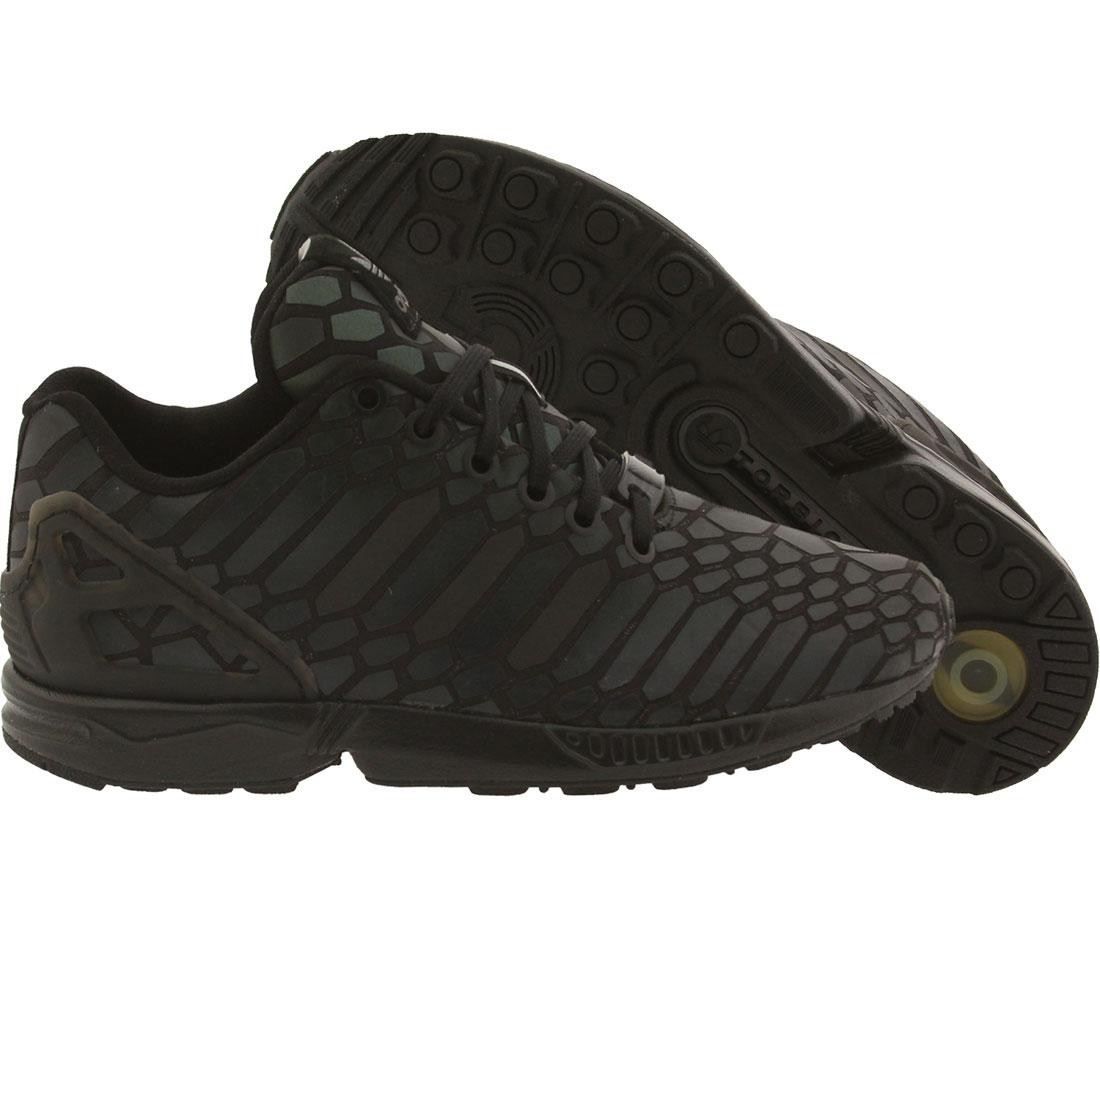 c44ab09b4938 Adidas Big Kids ZX Flux Xeno black supplier colour core black